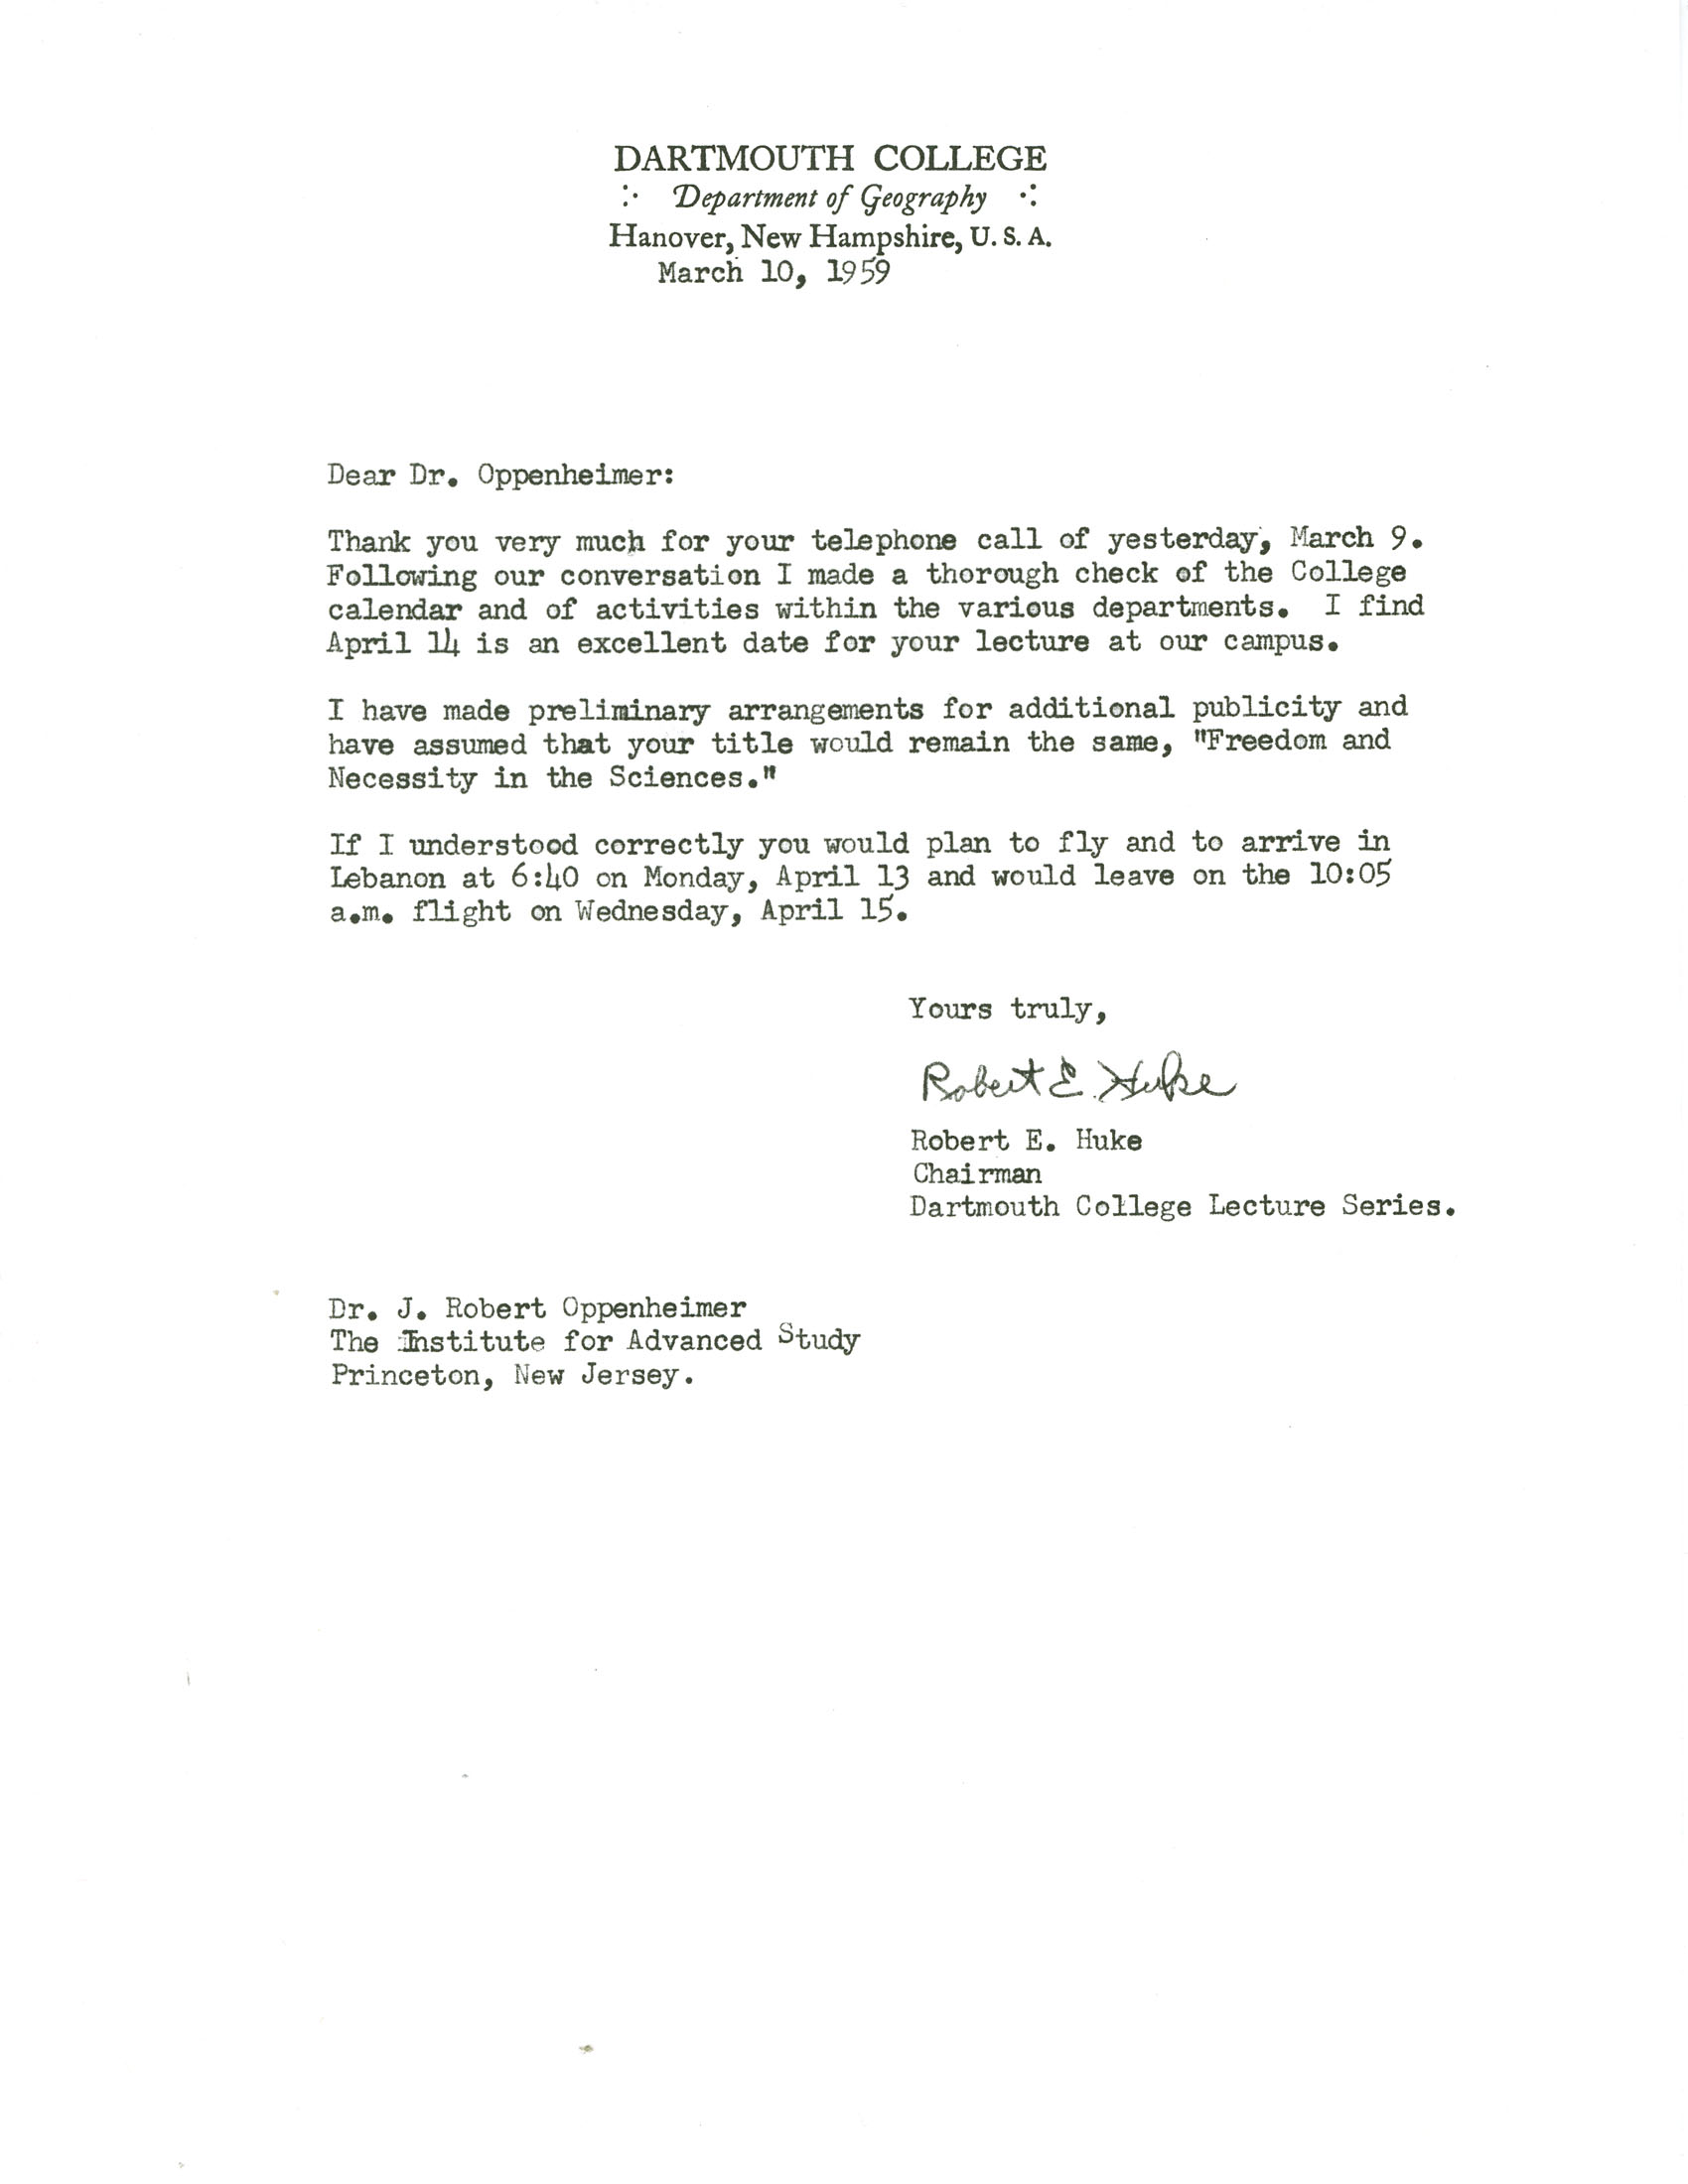 Letter from robert huke dartmouth college to robert oppenheimer letter from robert huke dartmouth college to robert oppenheimer princeton university 10 march 1959 madrichimfo Image collections